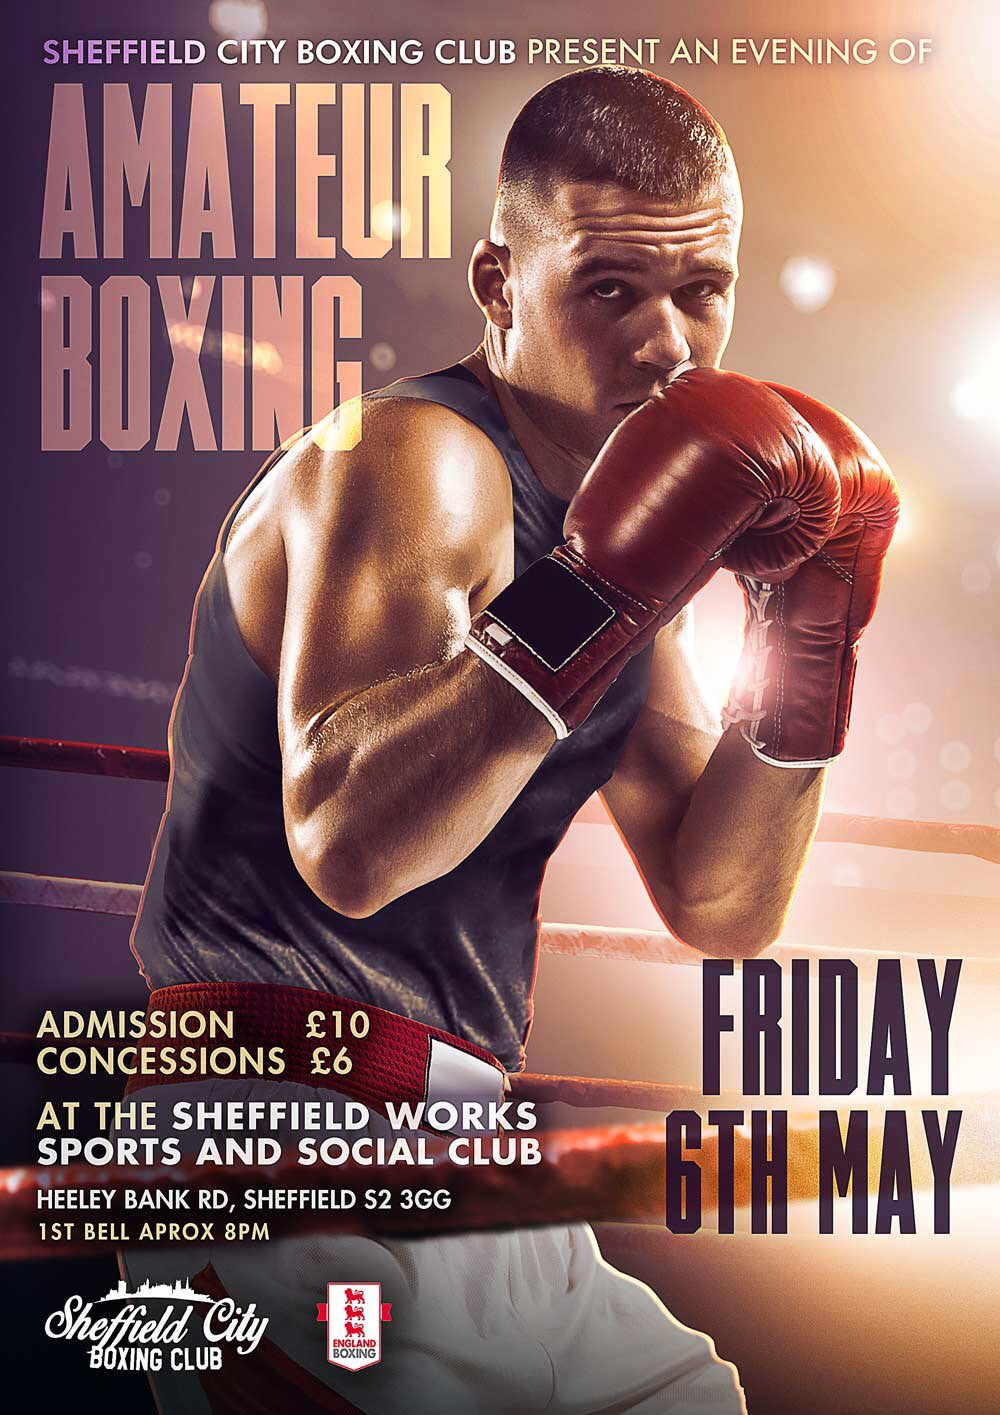 amateur boxing poster for sheffield boxing club